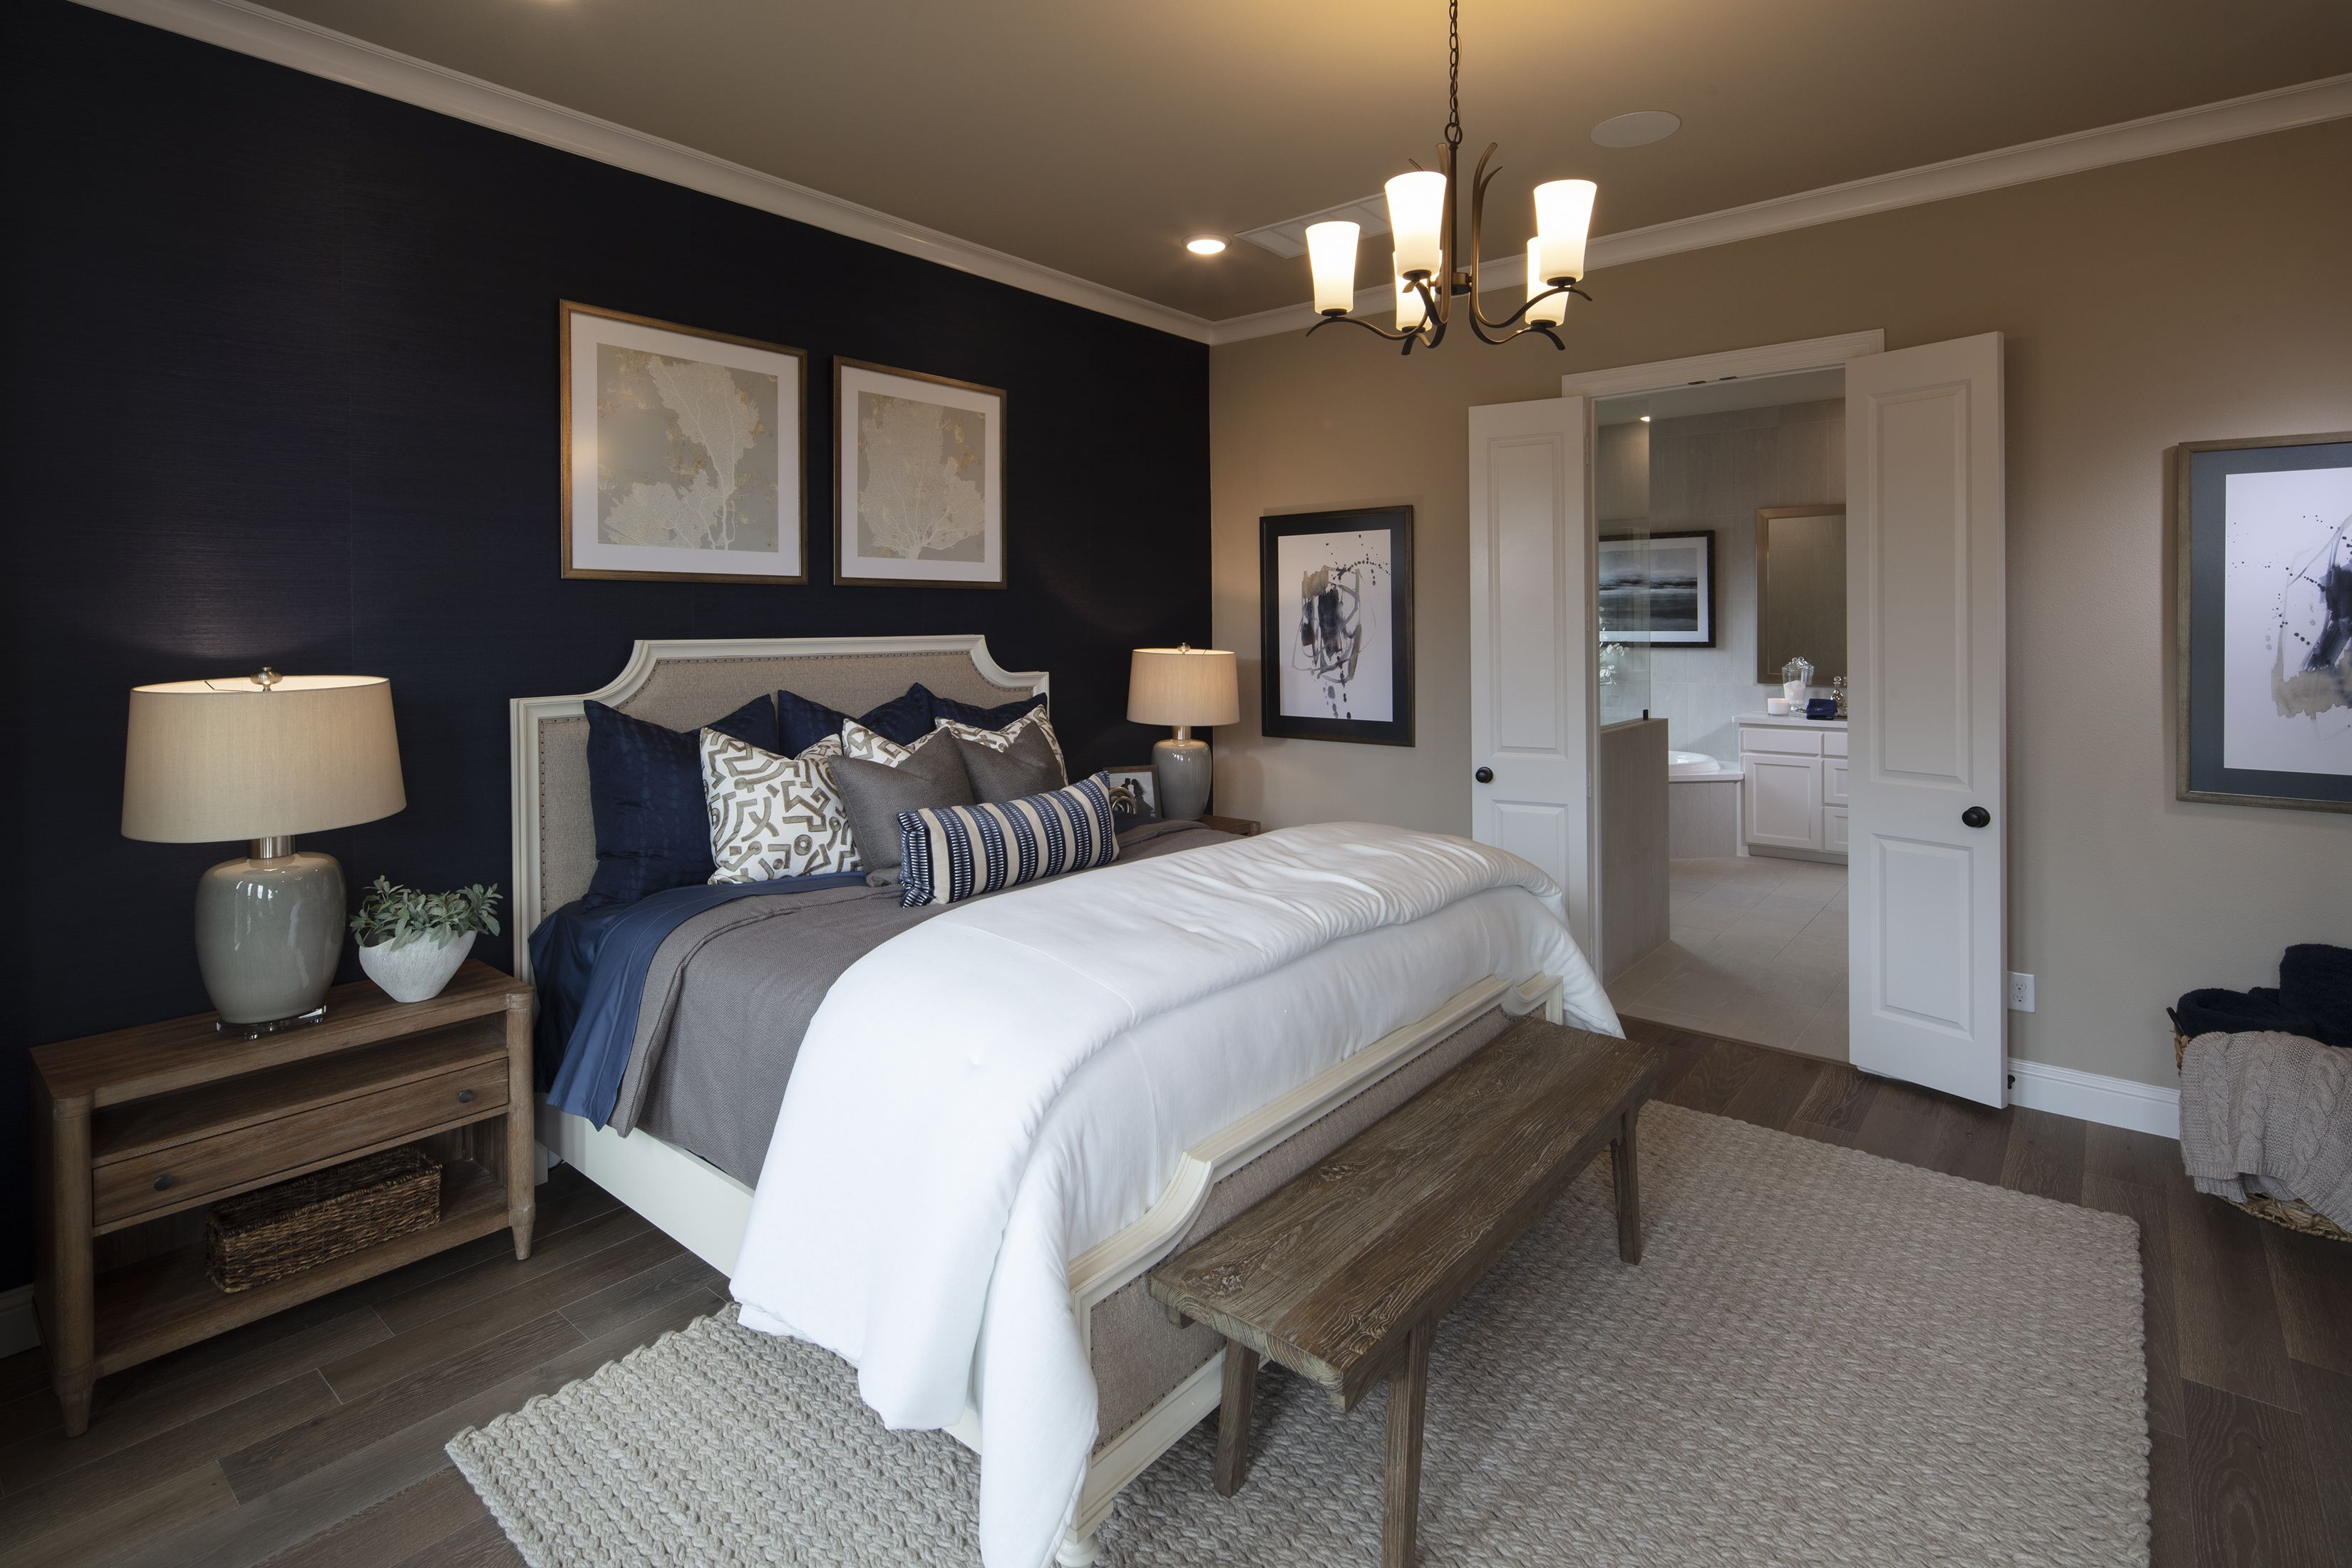 A Navy Blue Accent Wall In The Bedroom Creates A Look Of Elegance